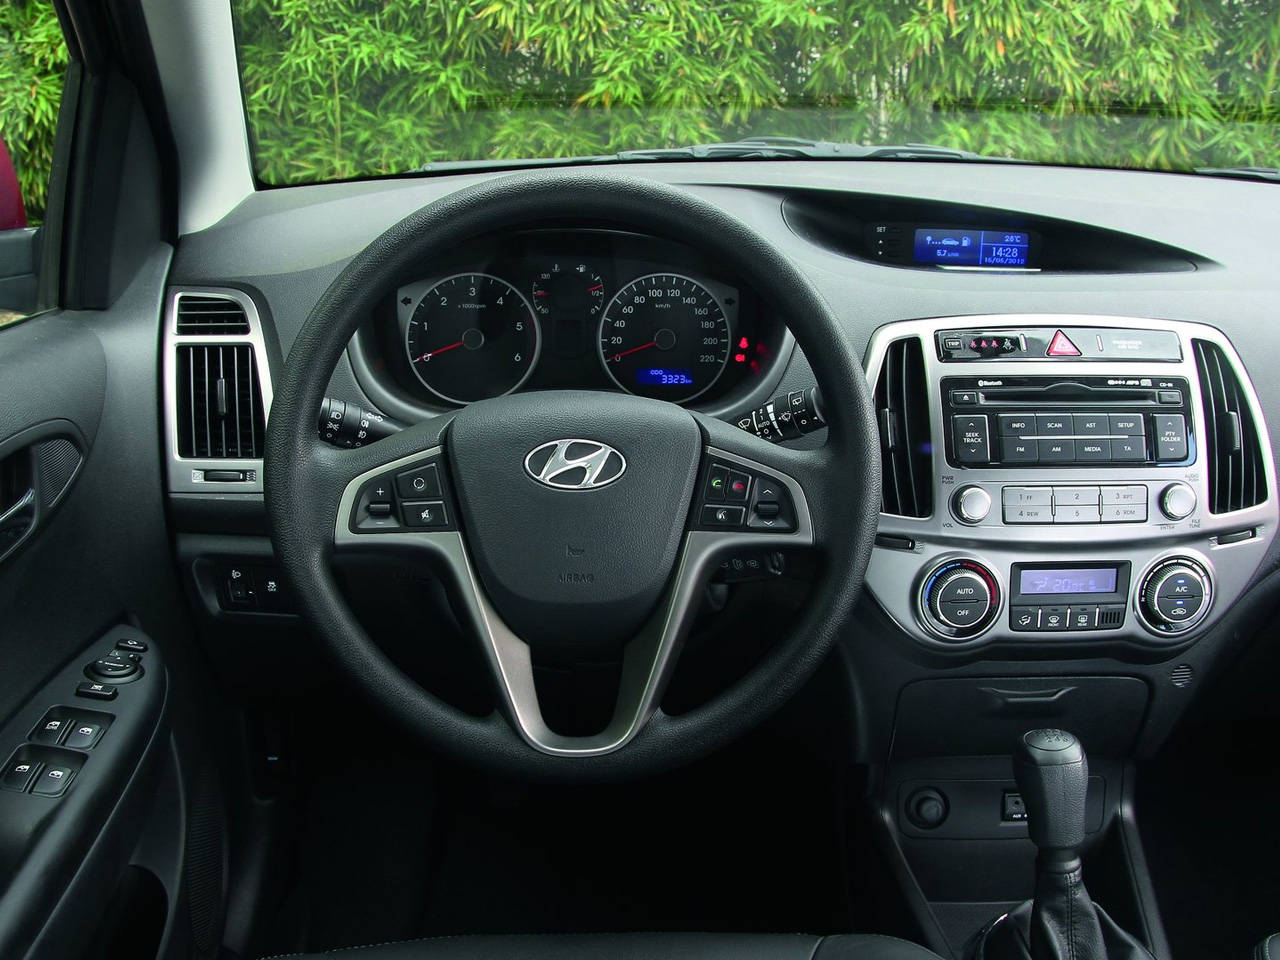 Hyundai i20 2013 interior muscle cars zone for Hyundai i20 2015 interior